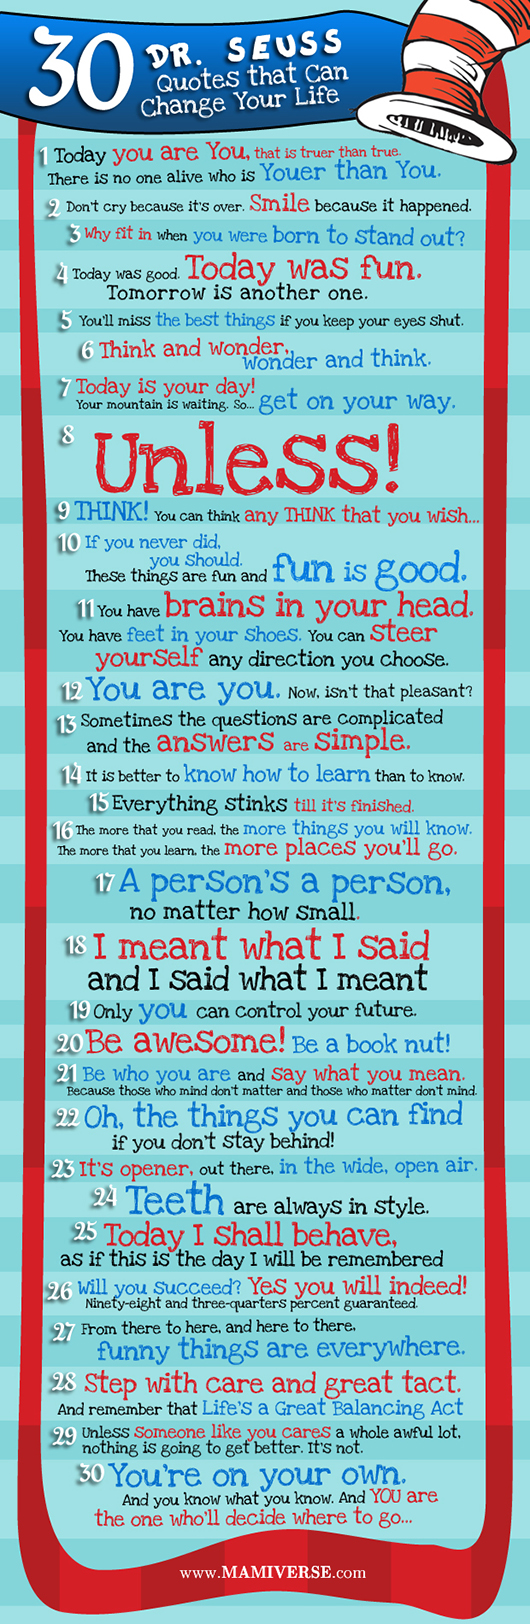 Dr Seuss Quotes About Love 30 Drseuss Quotes That Can Change Your Life  A Holistic